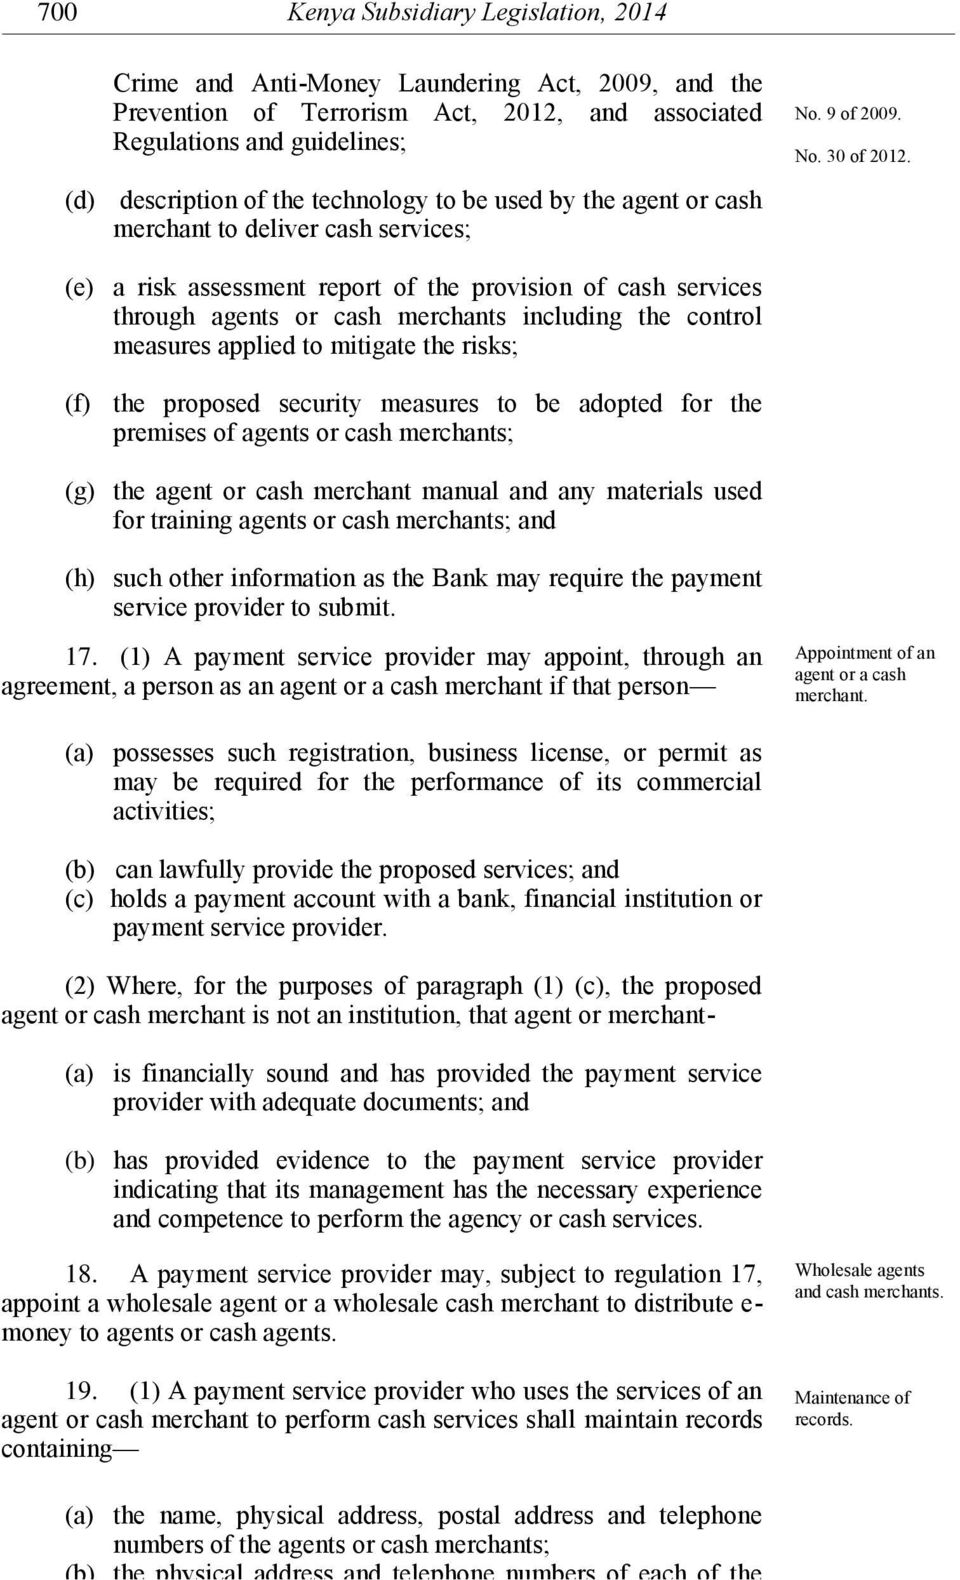 (e) a risk assessment report of the provision of cash services through agents or cash merchants including the control measures applied to mitigate the risks; (f) the proposed security measures to be